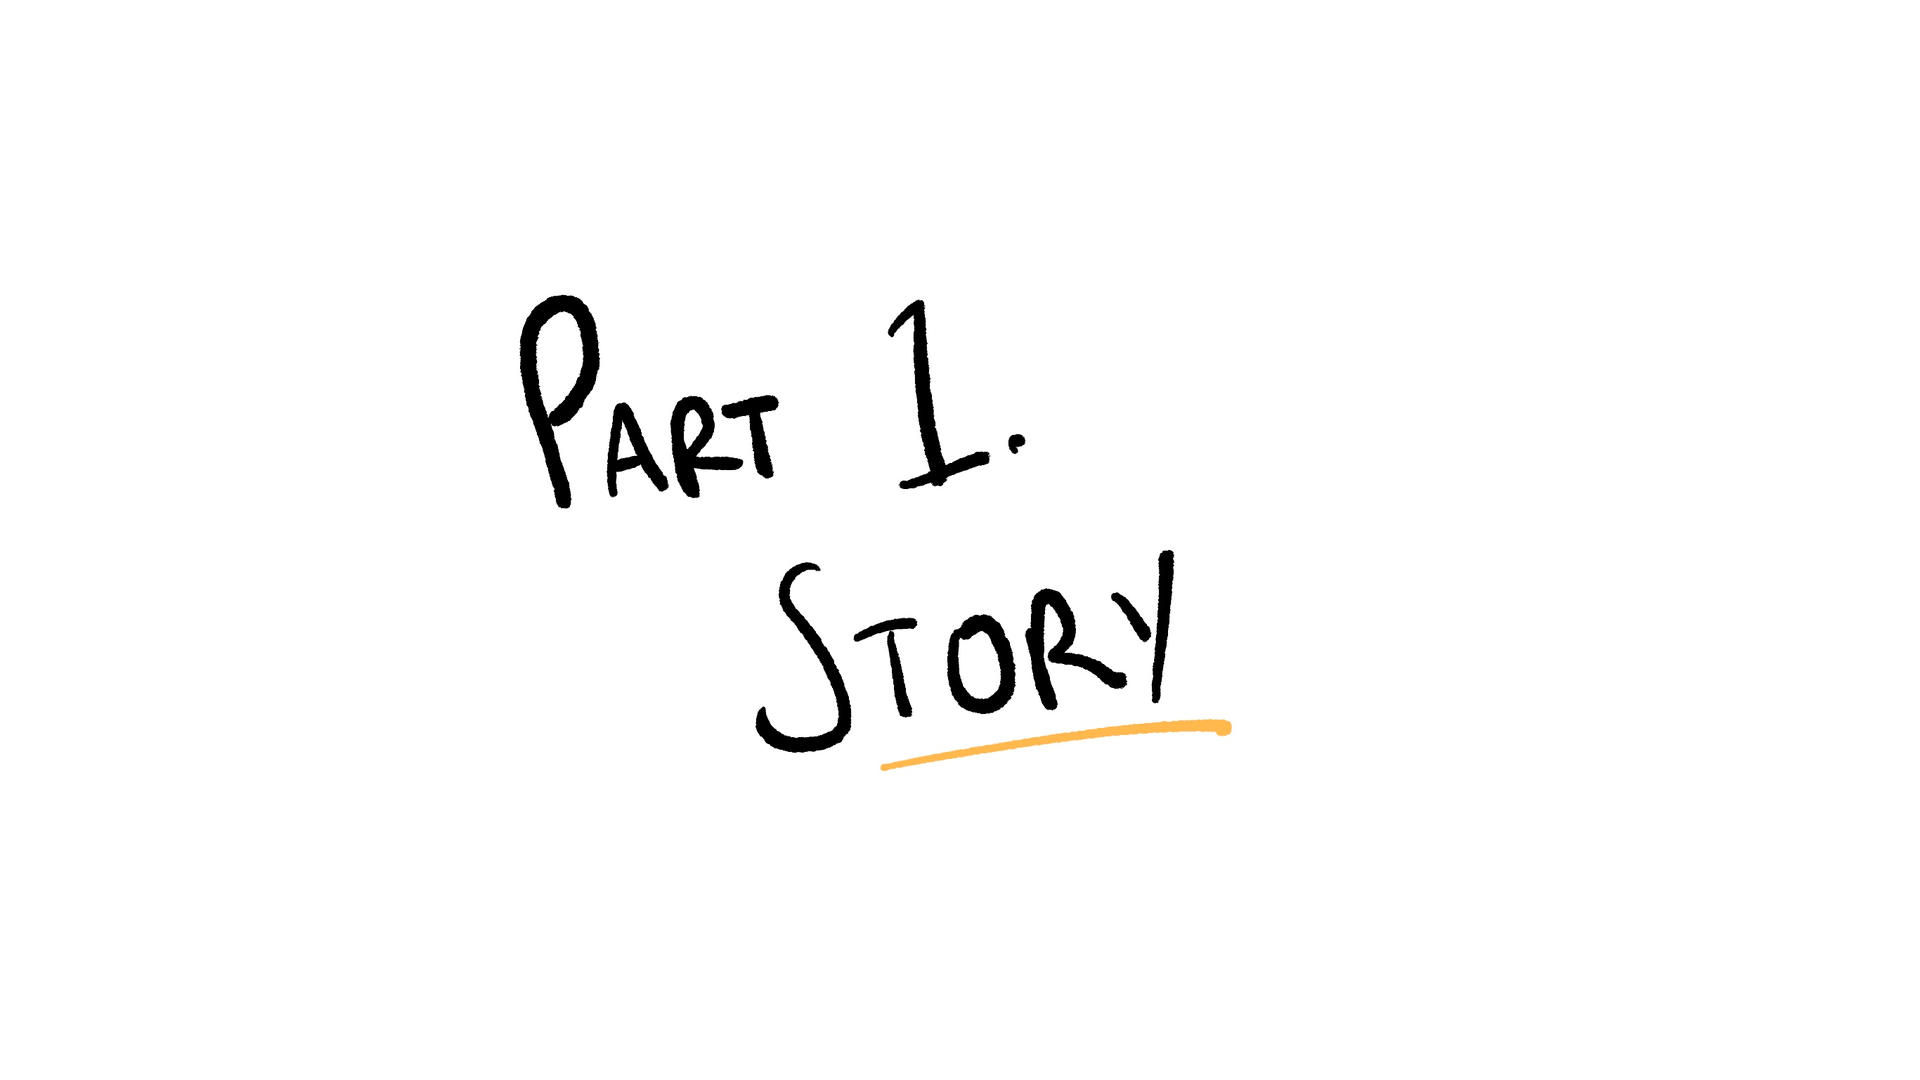 Part 1 - Story